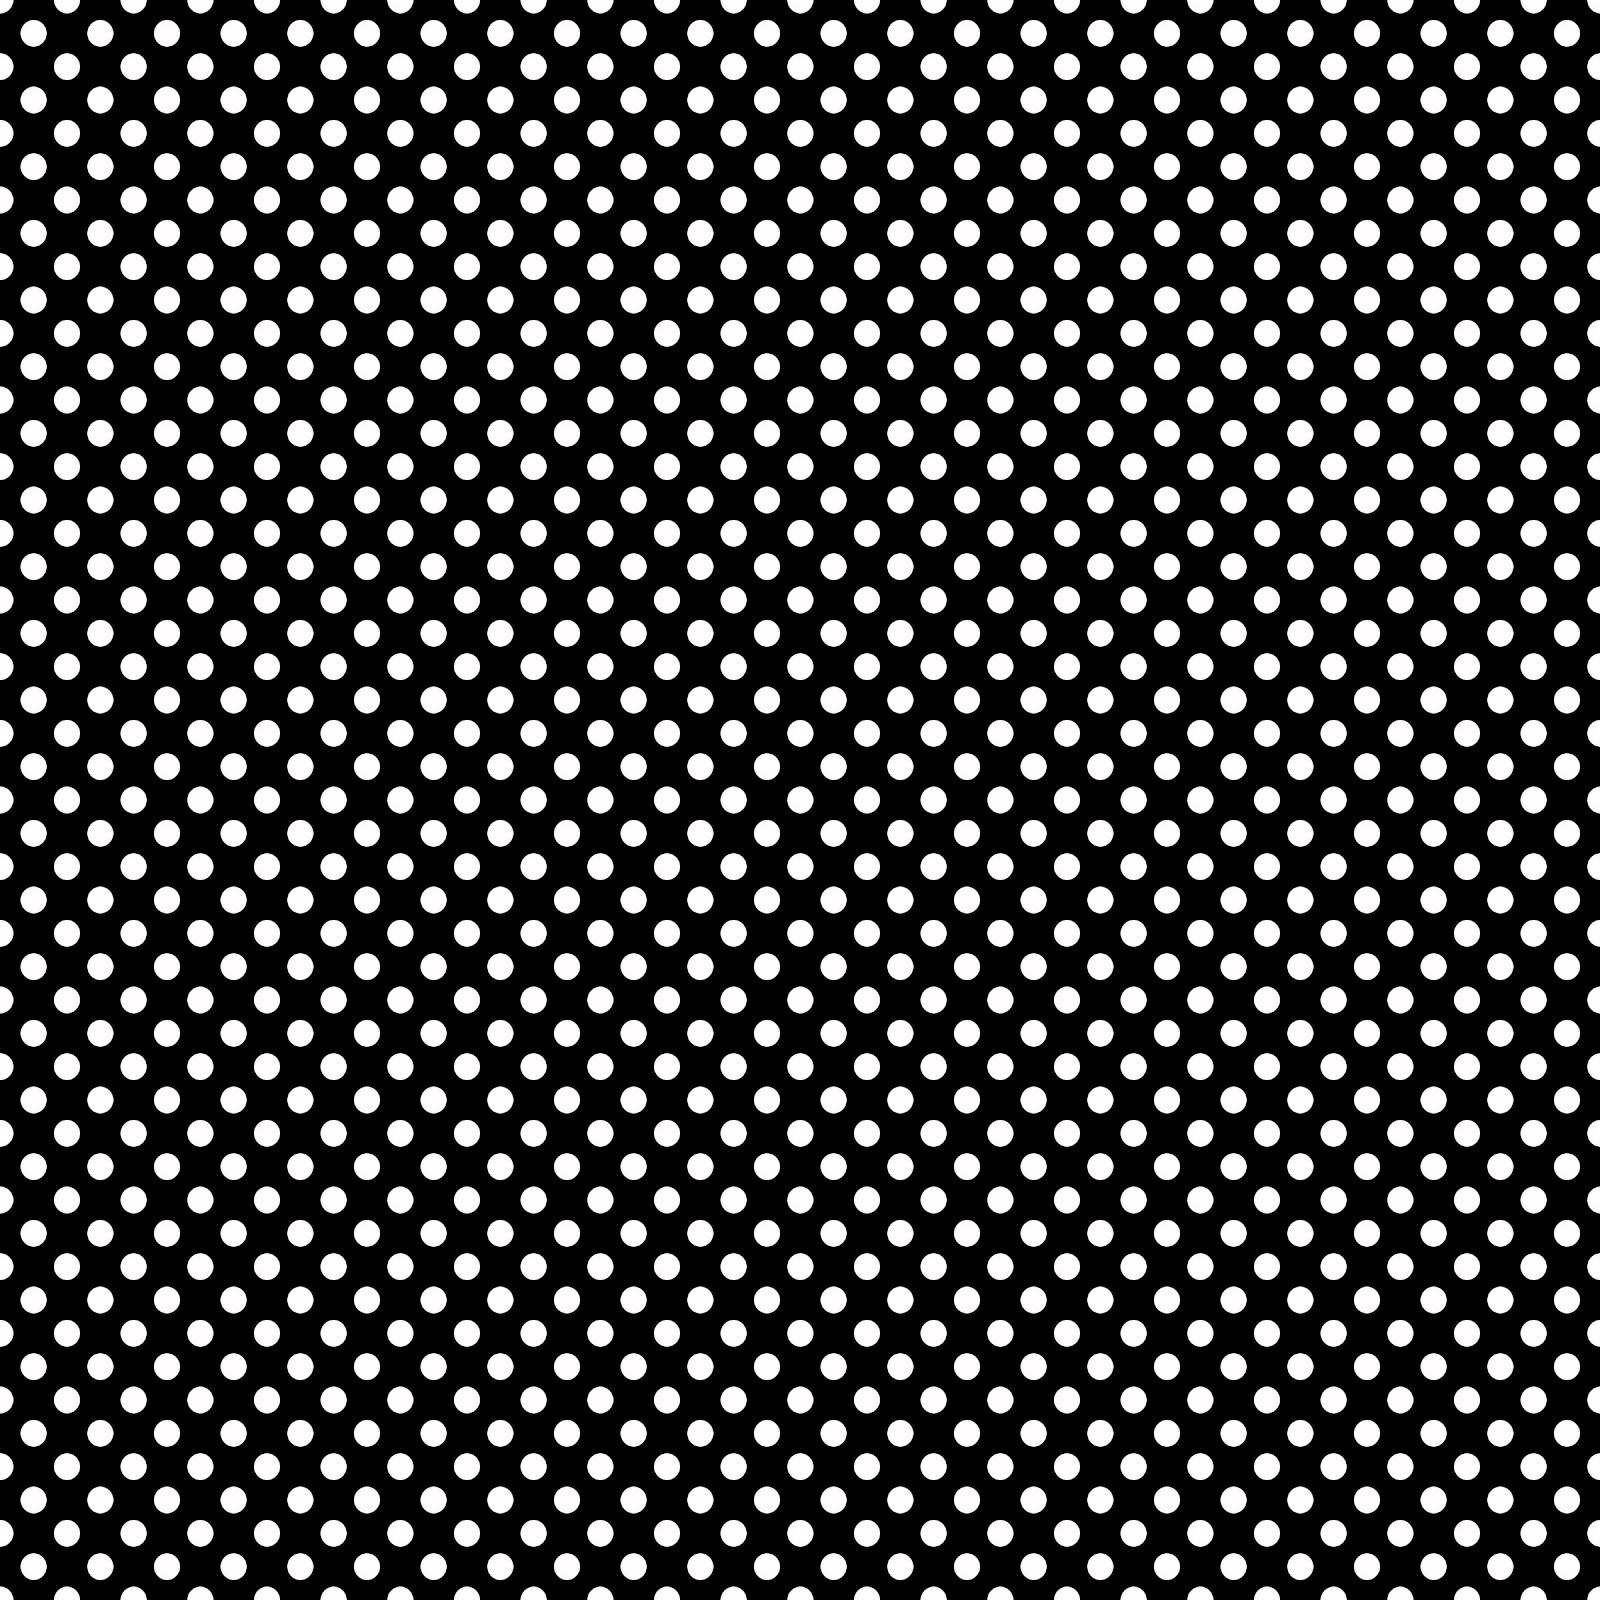 Stampin D'Amour: Scrapbook Papers - Black and White Polka Dots